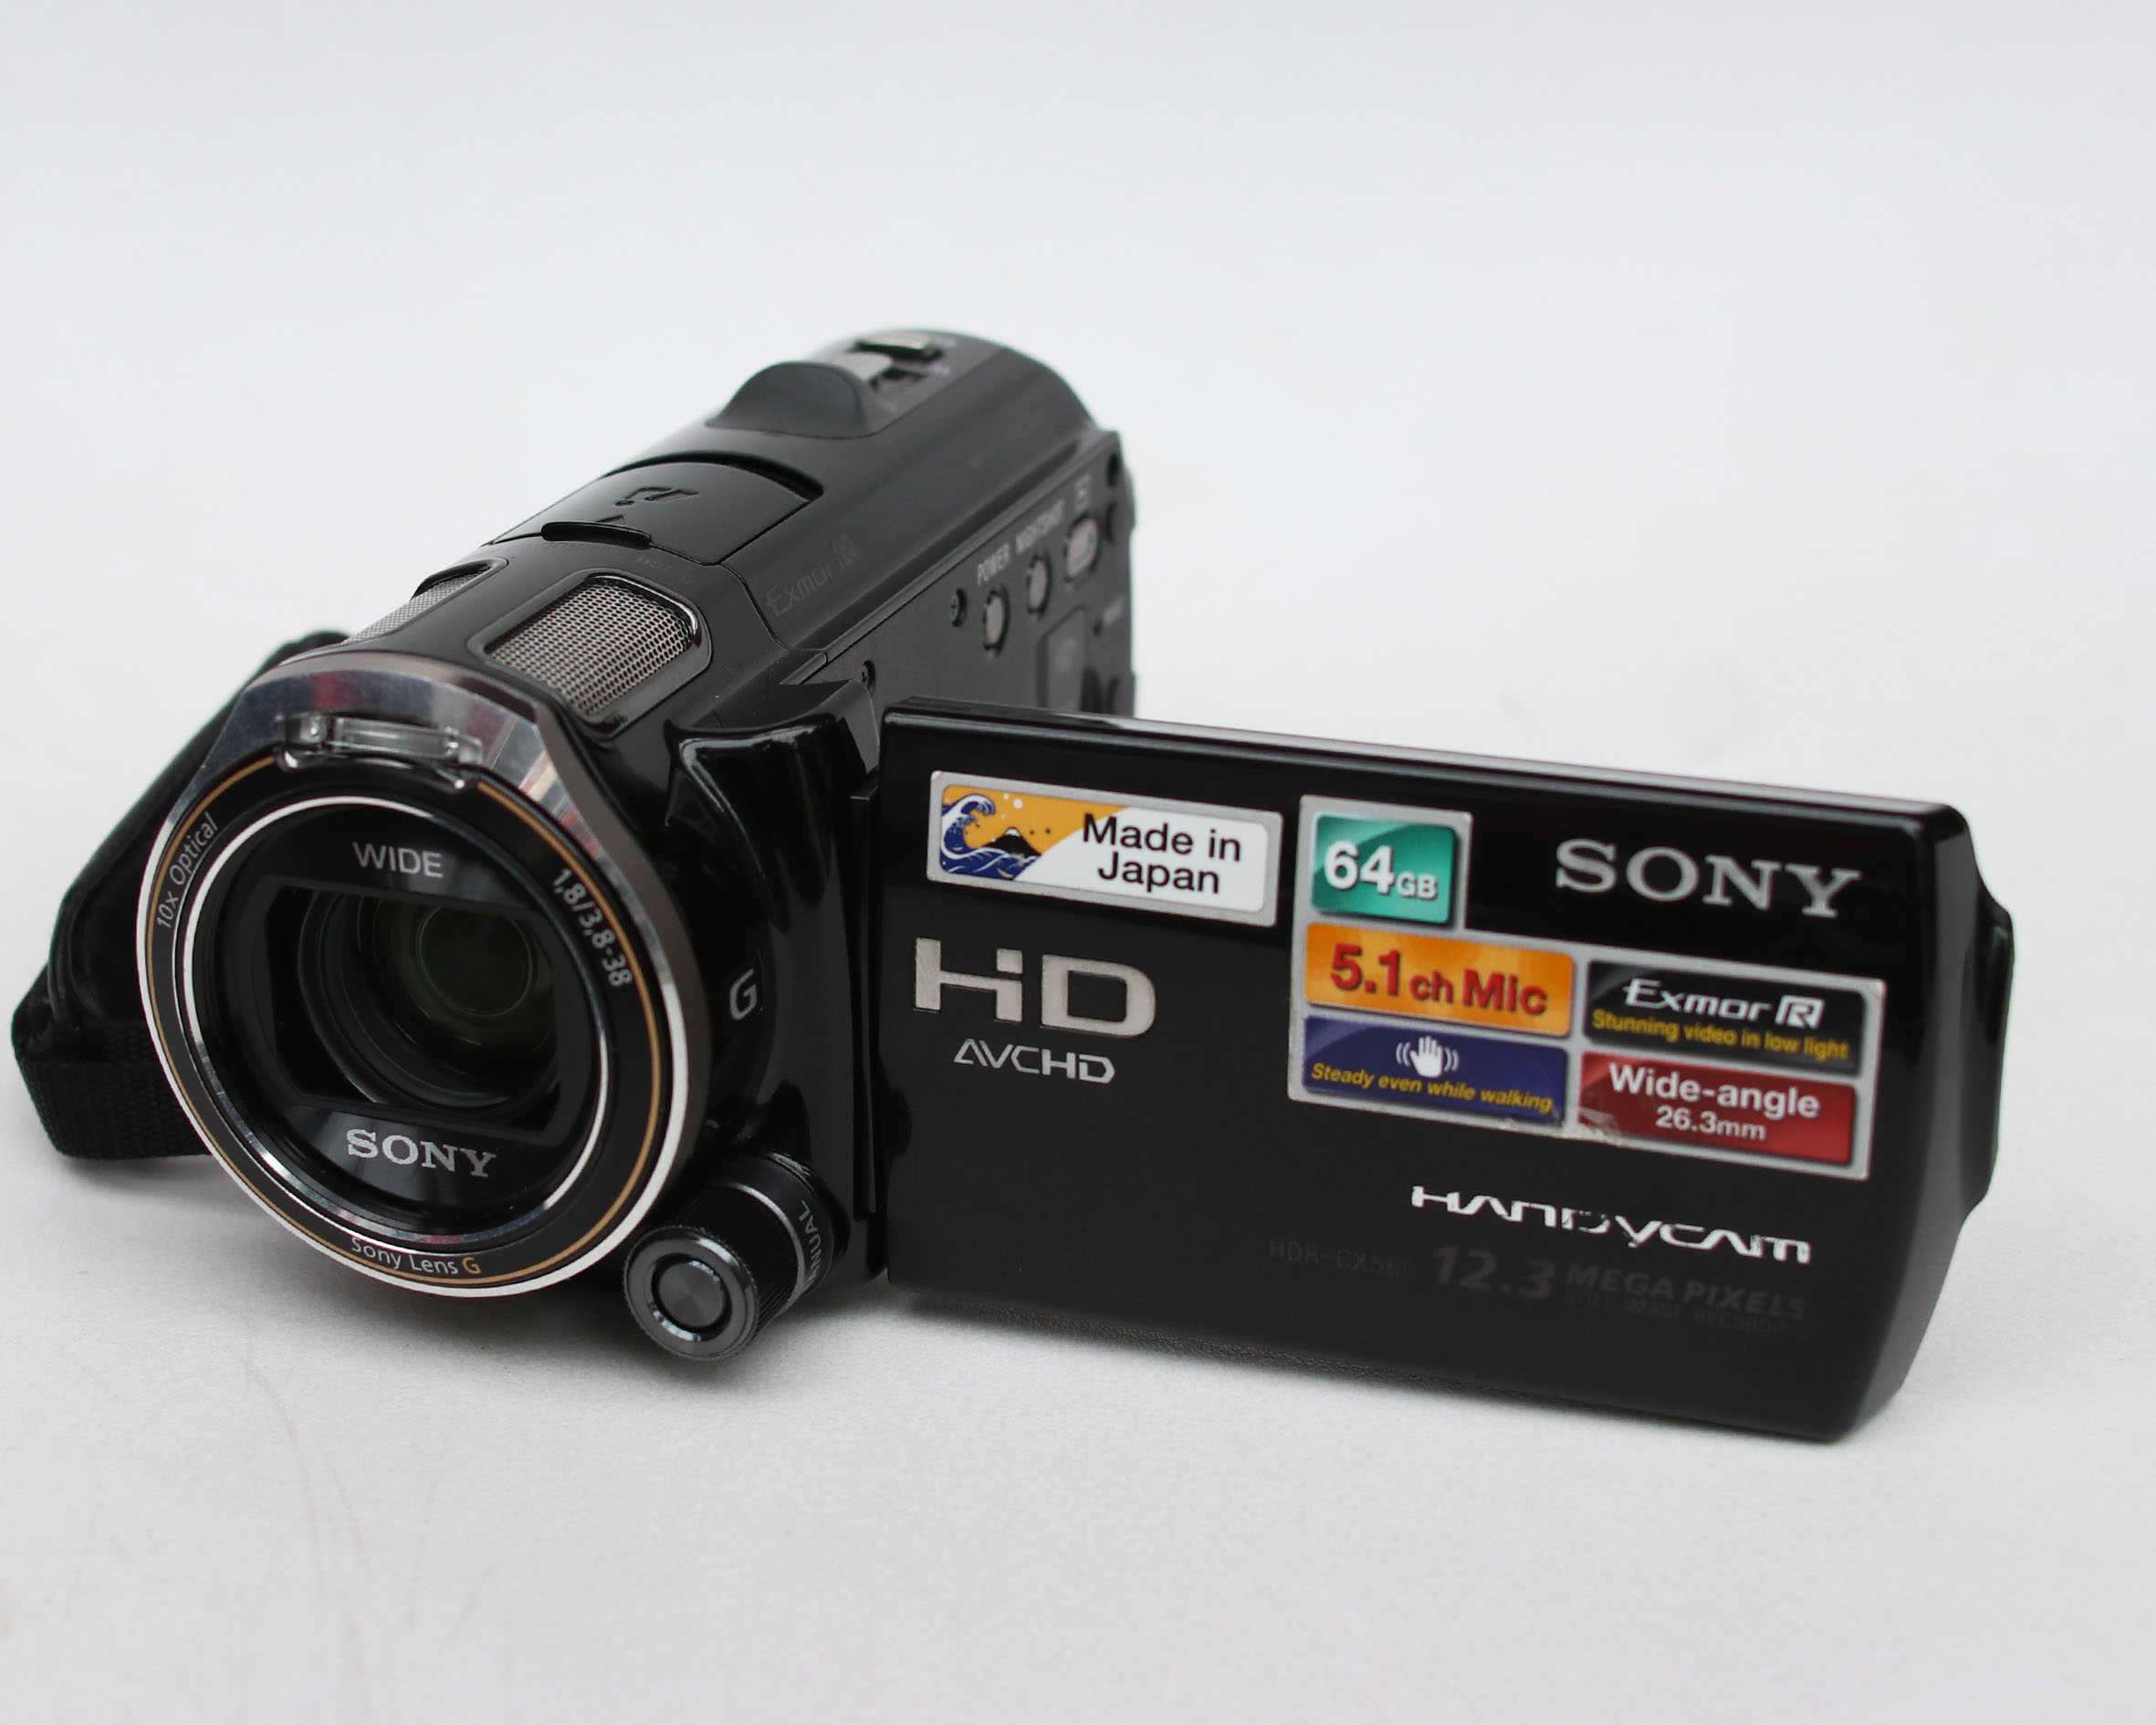 Sony HDR-CX560E Handycam 64gb